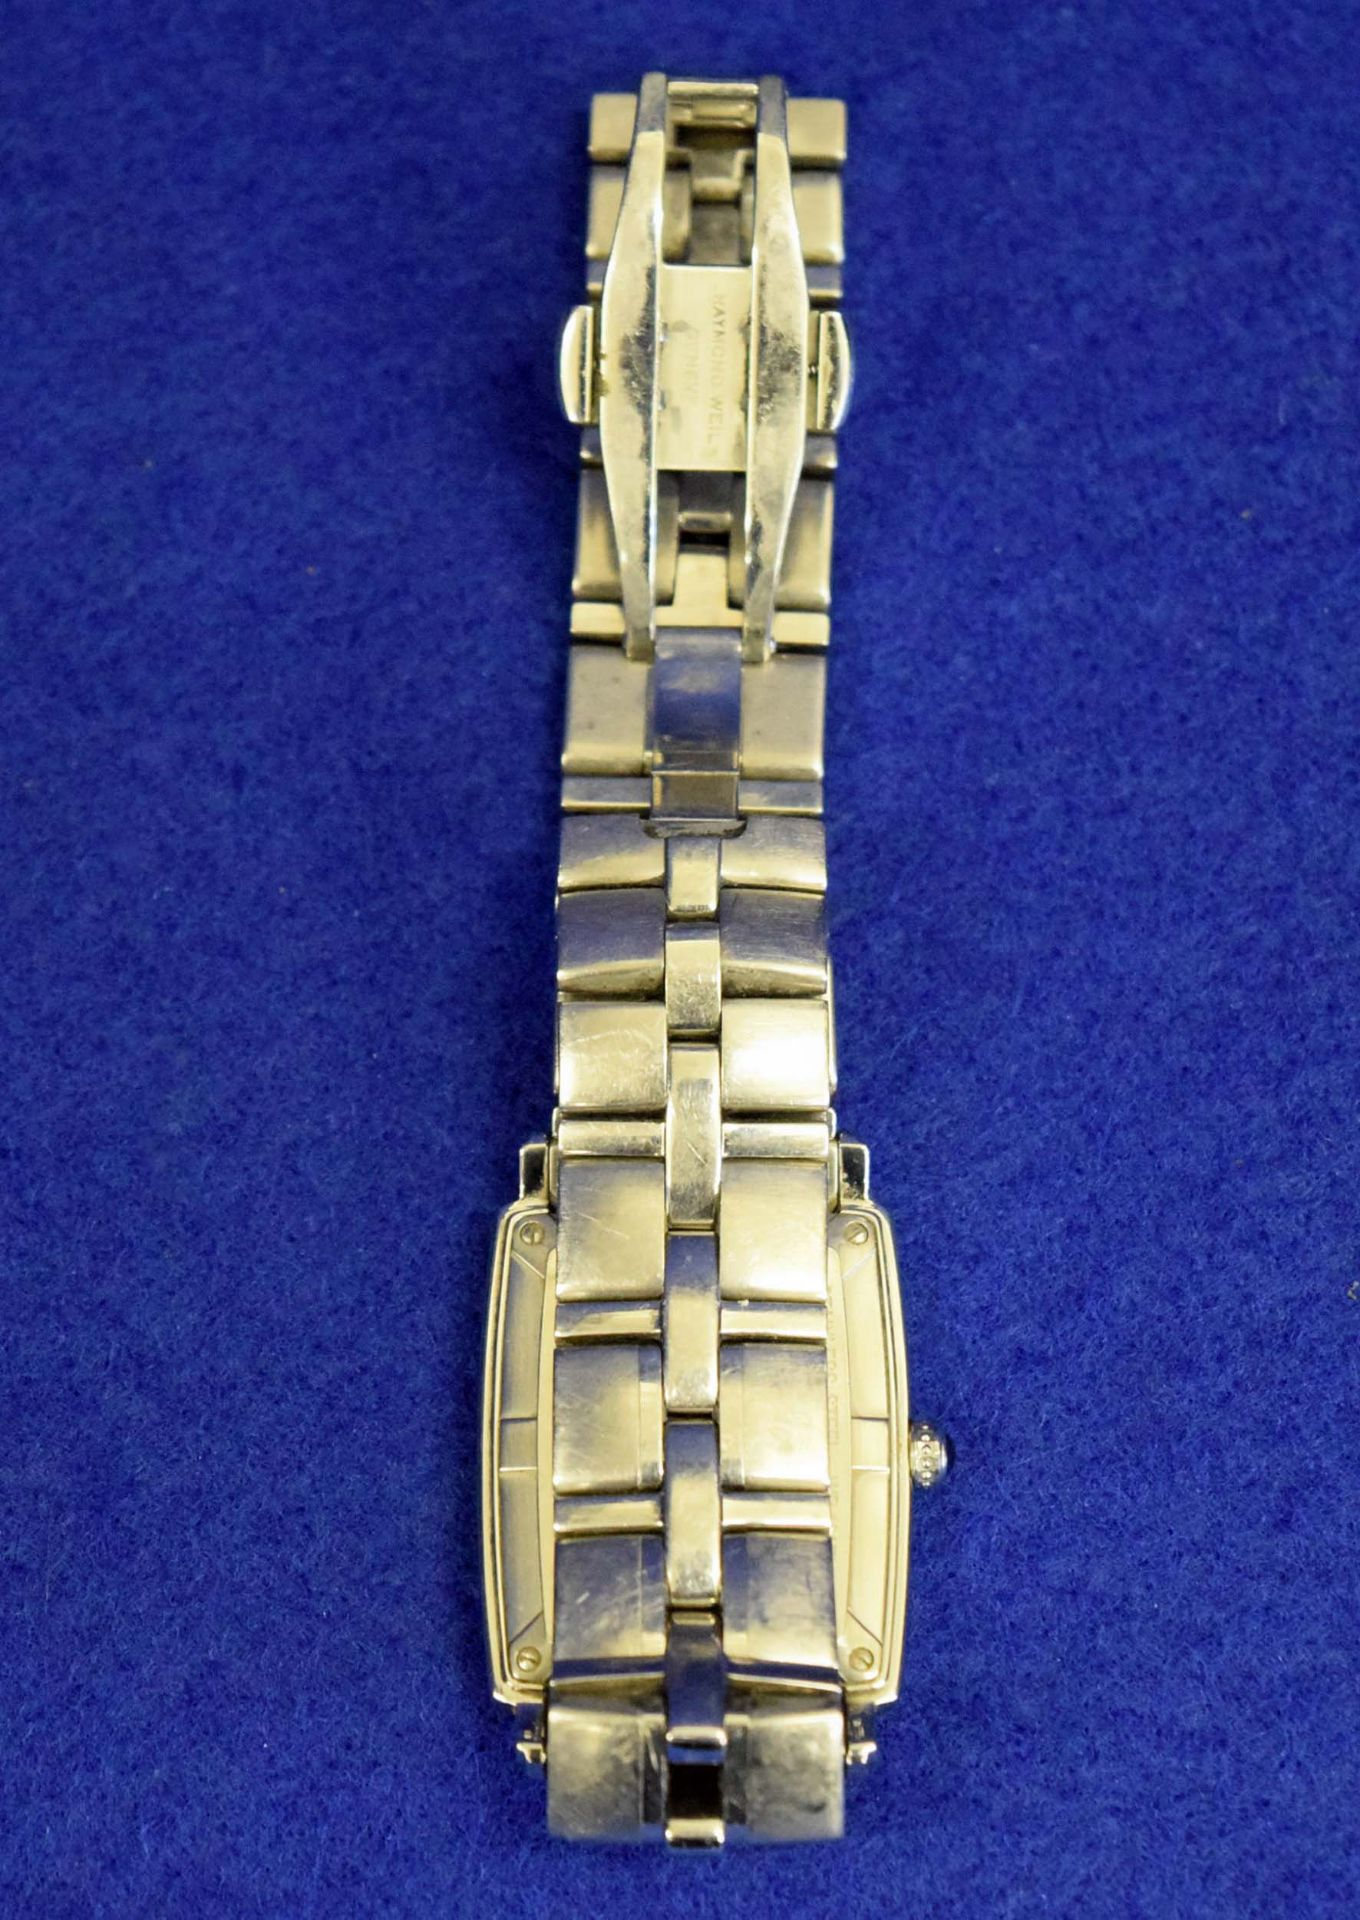 Lot 10 - A RAYMOND WEIL 'Parsifal' Barrel Stainless Steel Men's/Unisex Wrist Watch with Quartz Movement (